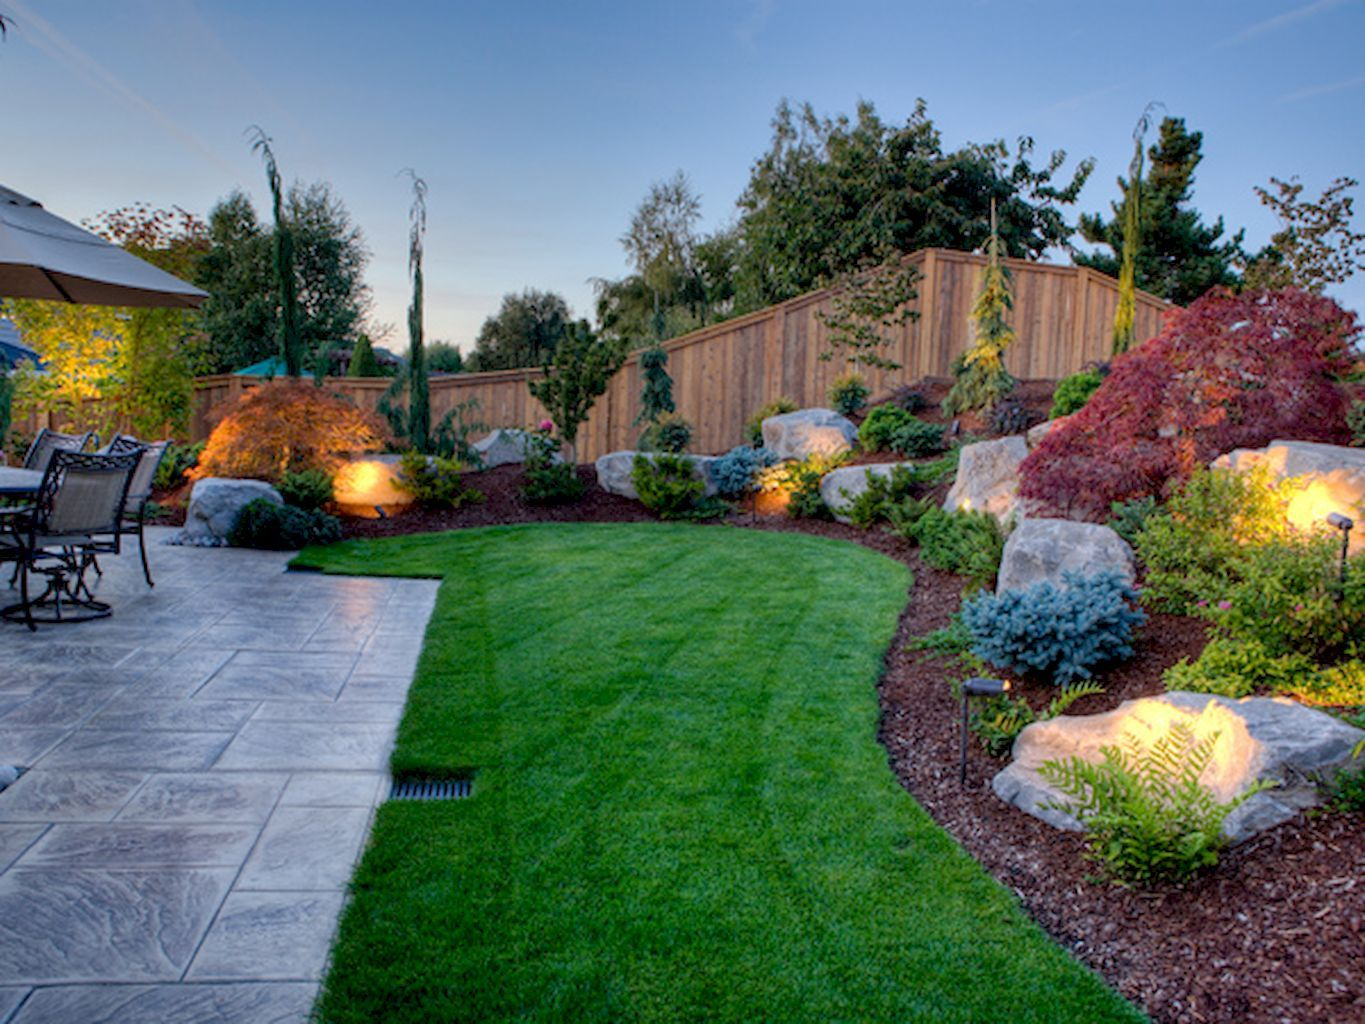 40 beautiful front yard landscaping ideas yard Small front lawn garden ideas